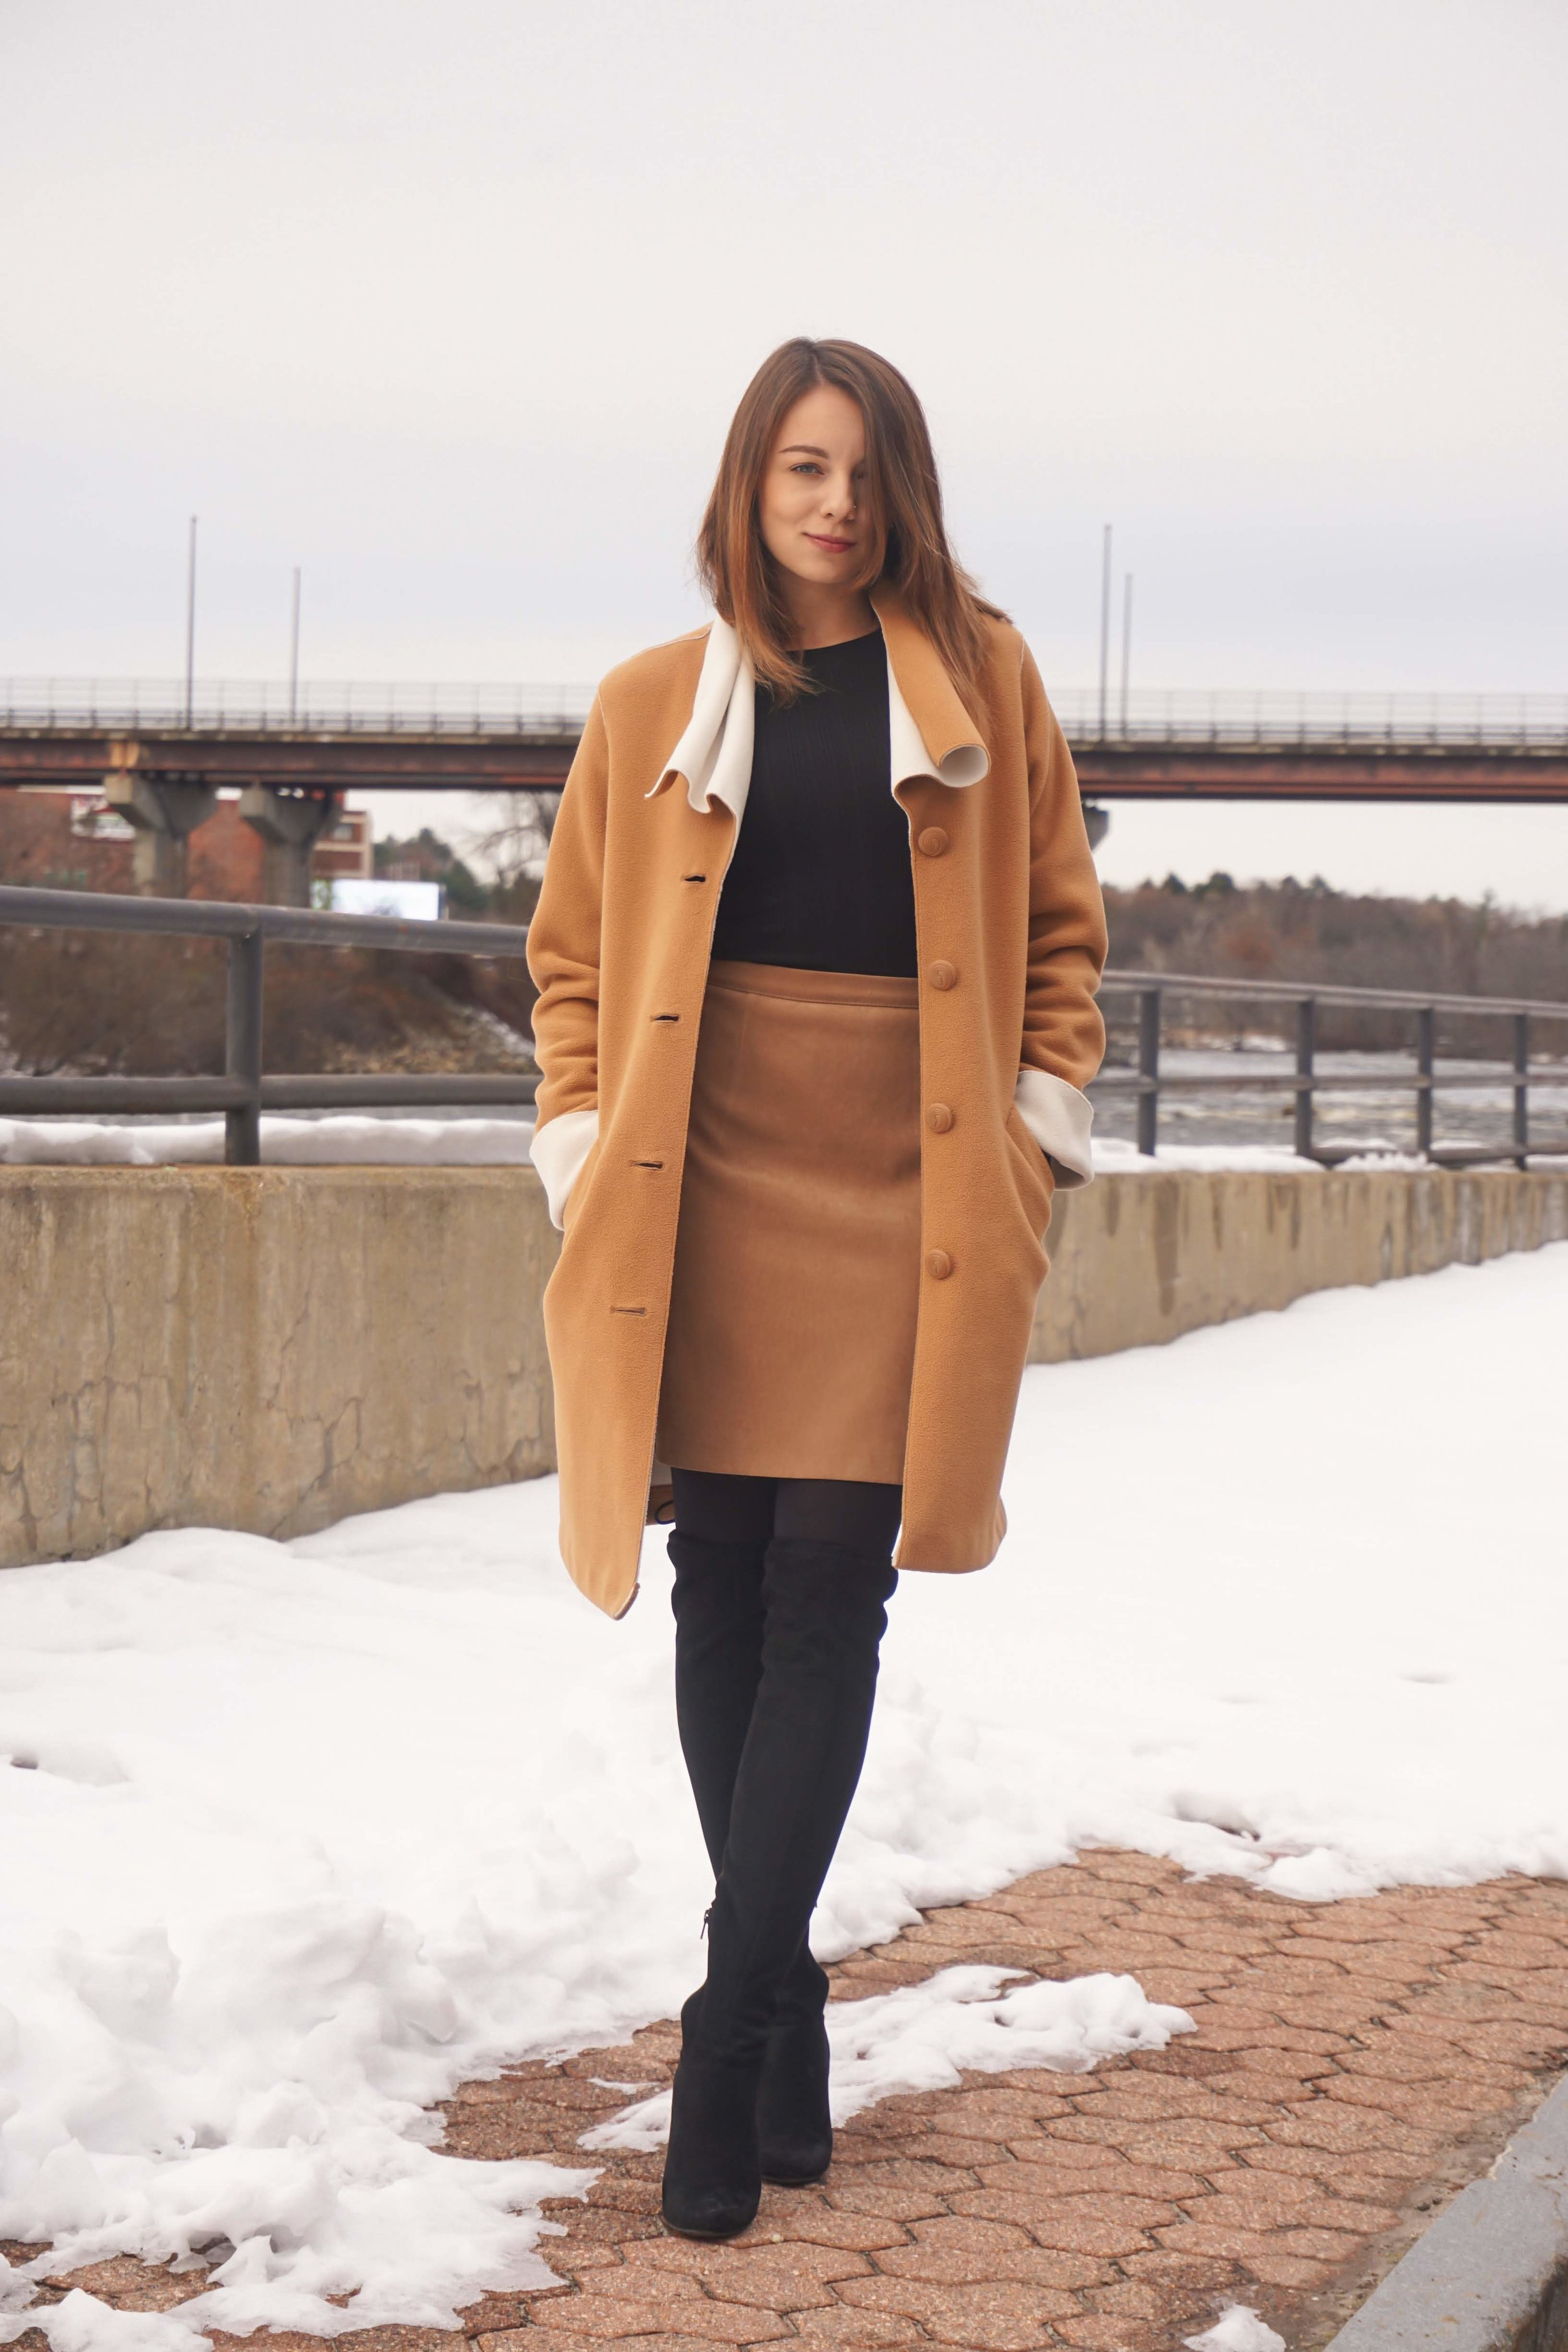 Fashion blogger posing near a river wearing a brown skirt, black top, brown coat, and black OTK boots.